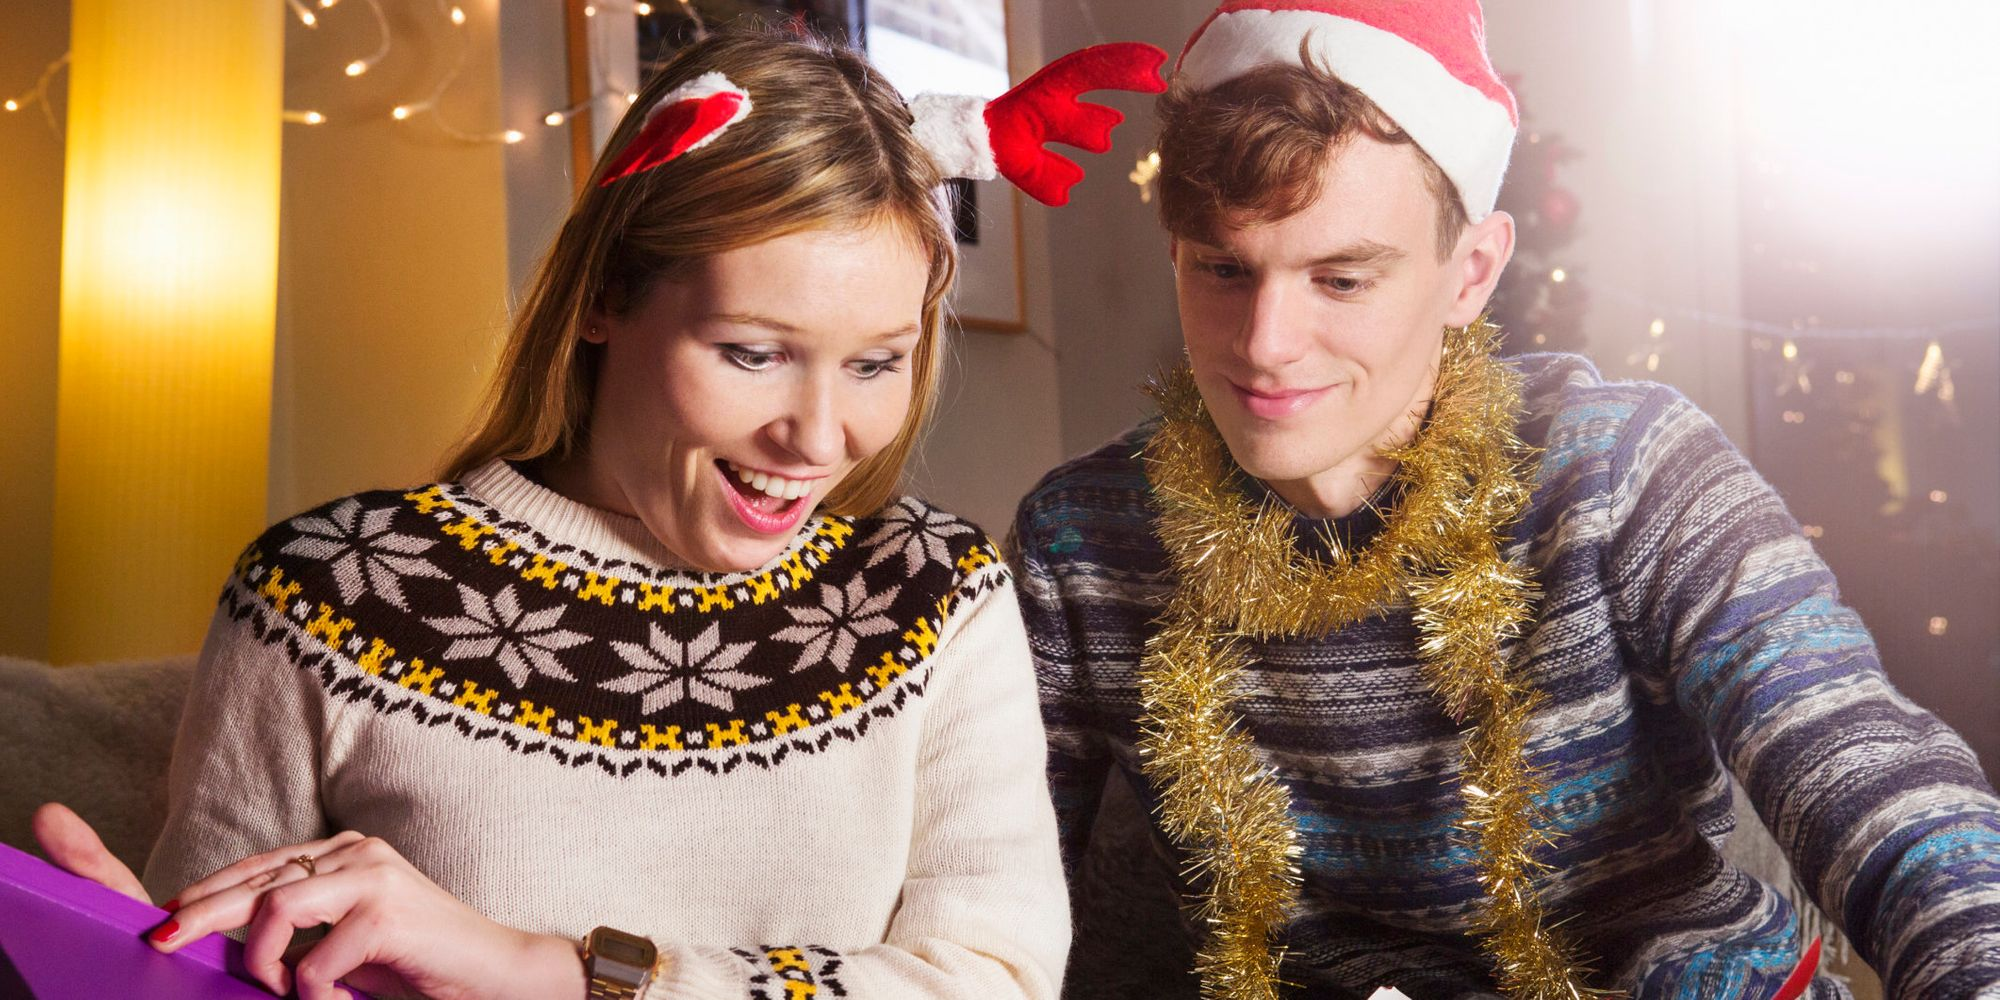 How To Deal With Being Given Totally Crap Christmas Presents | HuffPost UK